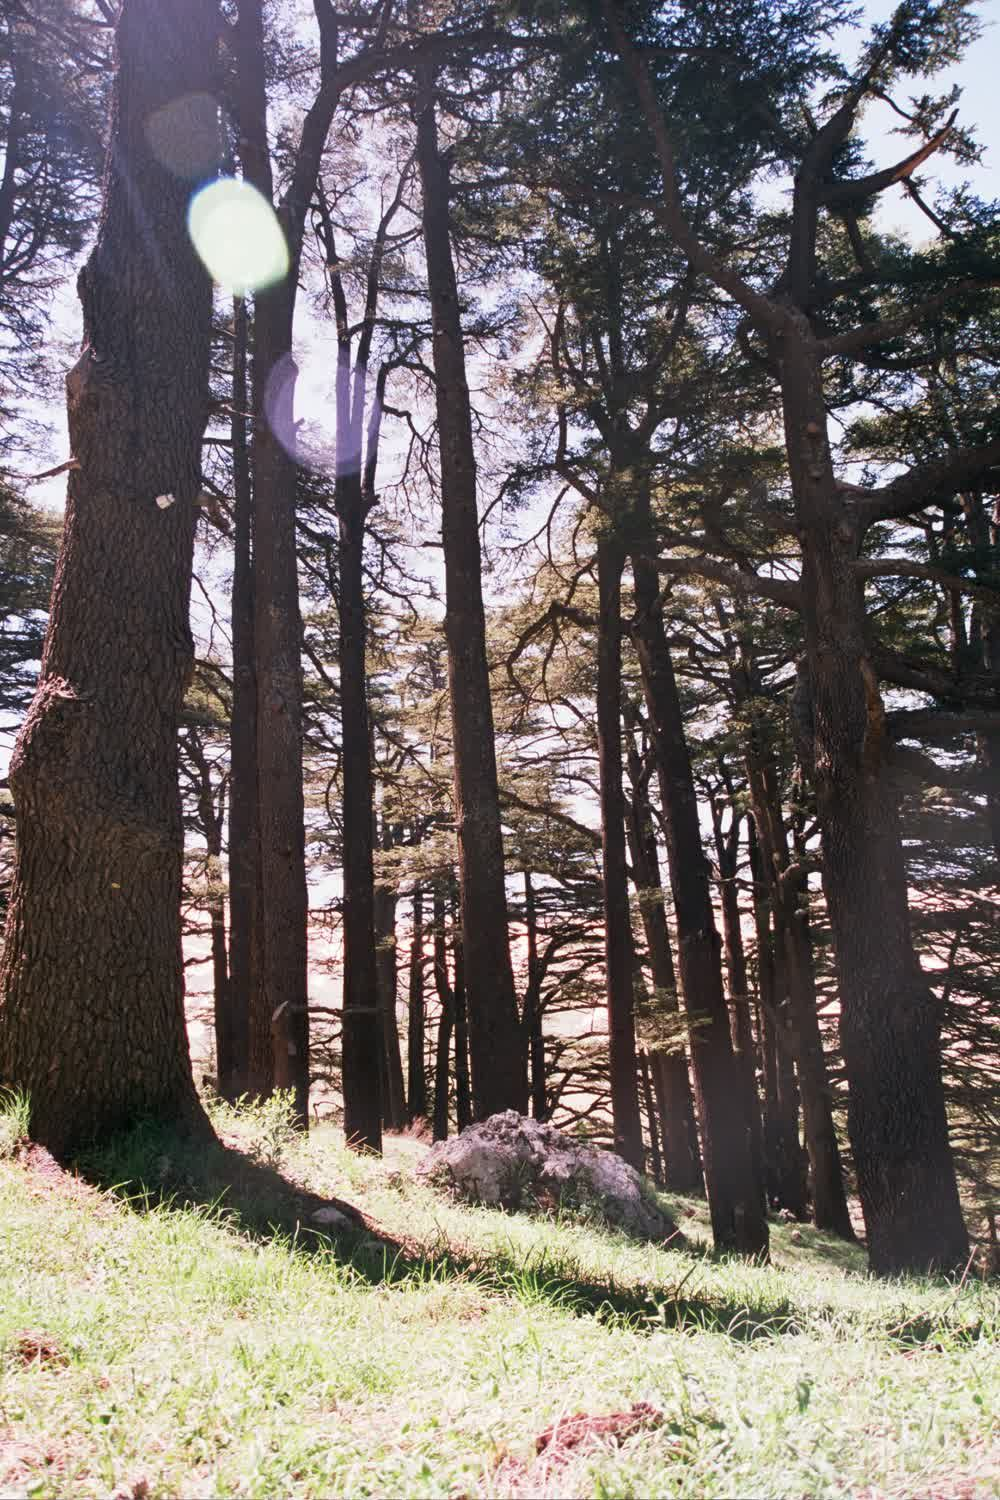 title: Trees in the Mountain Region Forests of Lebanon